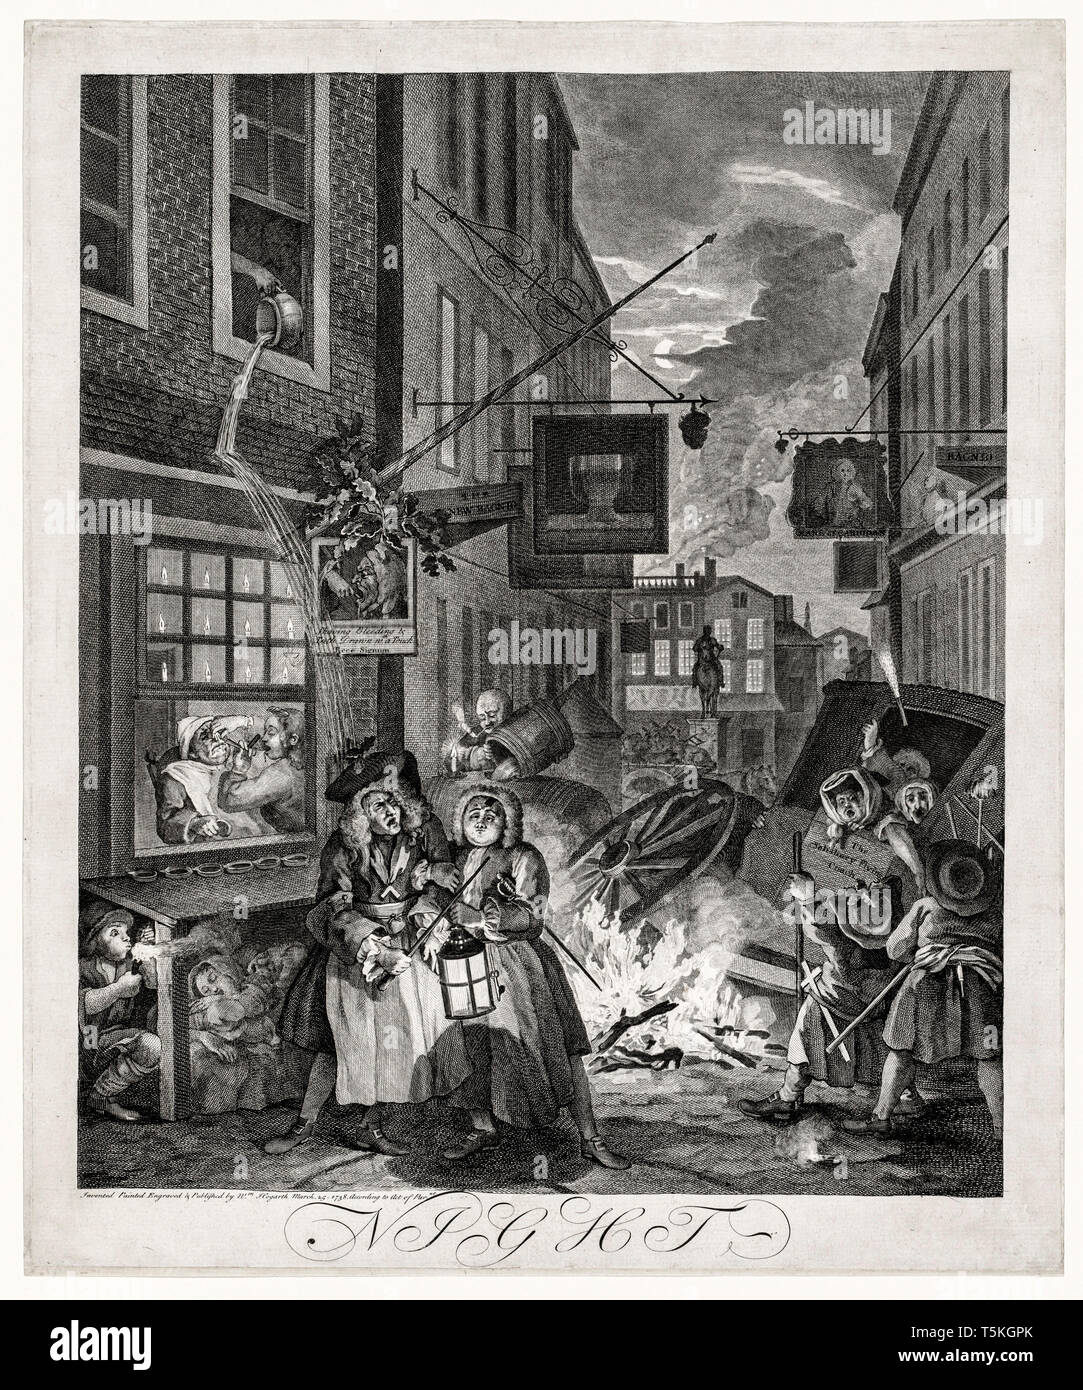 William Hogarth, The Four Times of Day: Night, engraving, 1738 Stock Photo